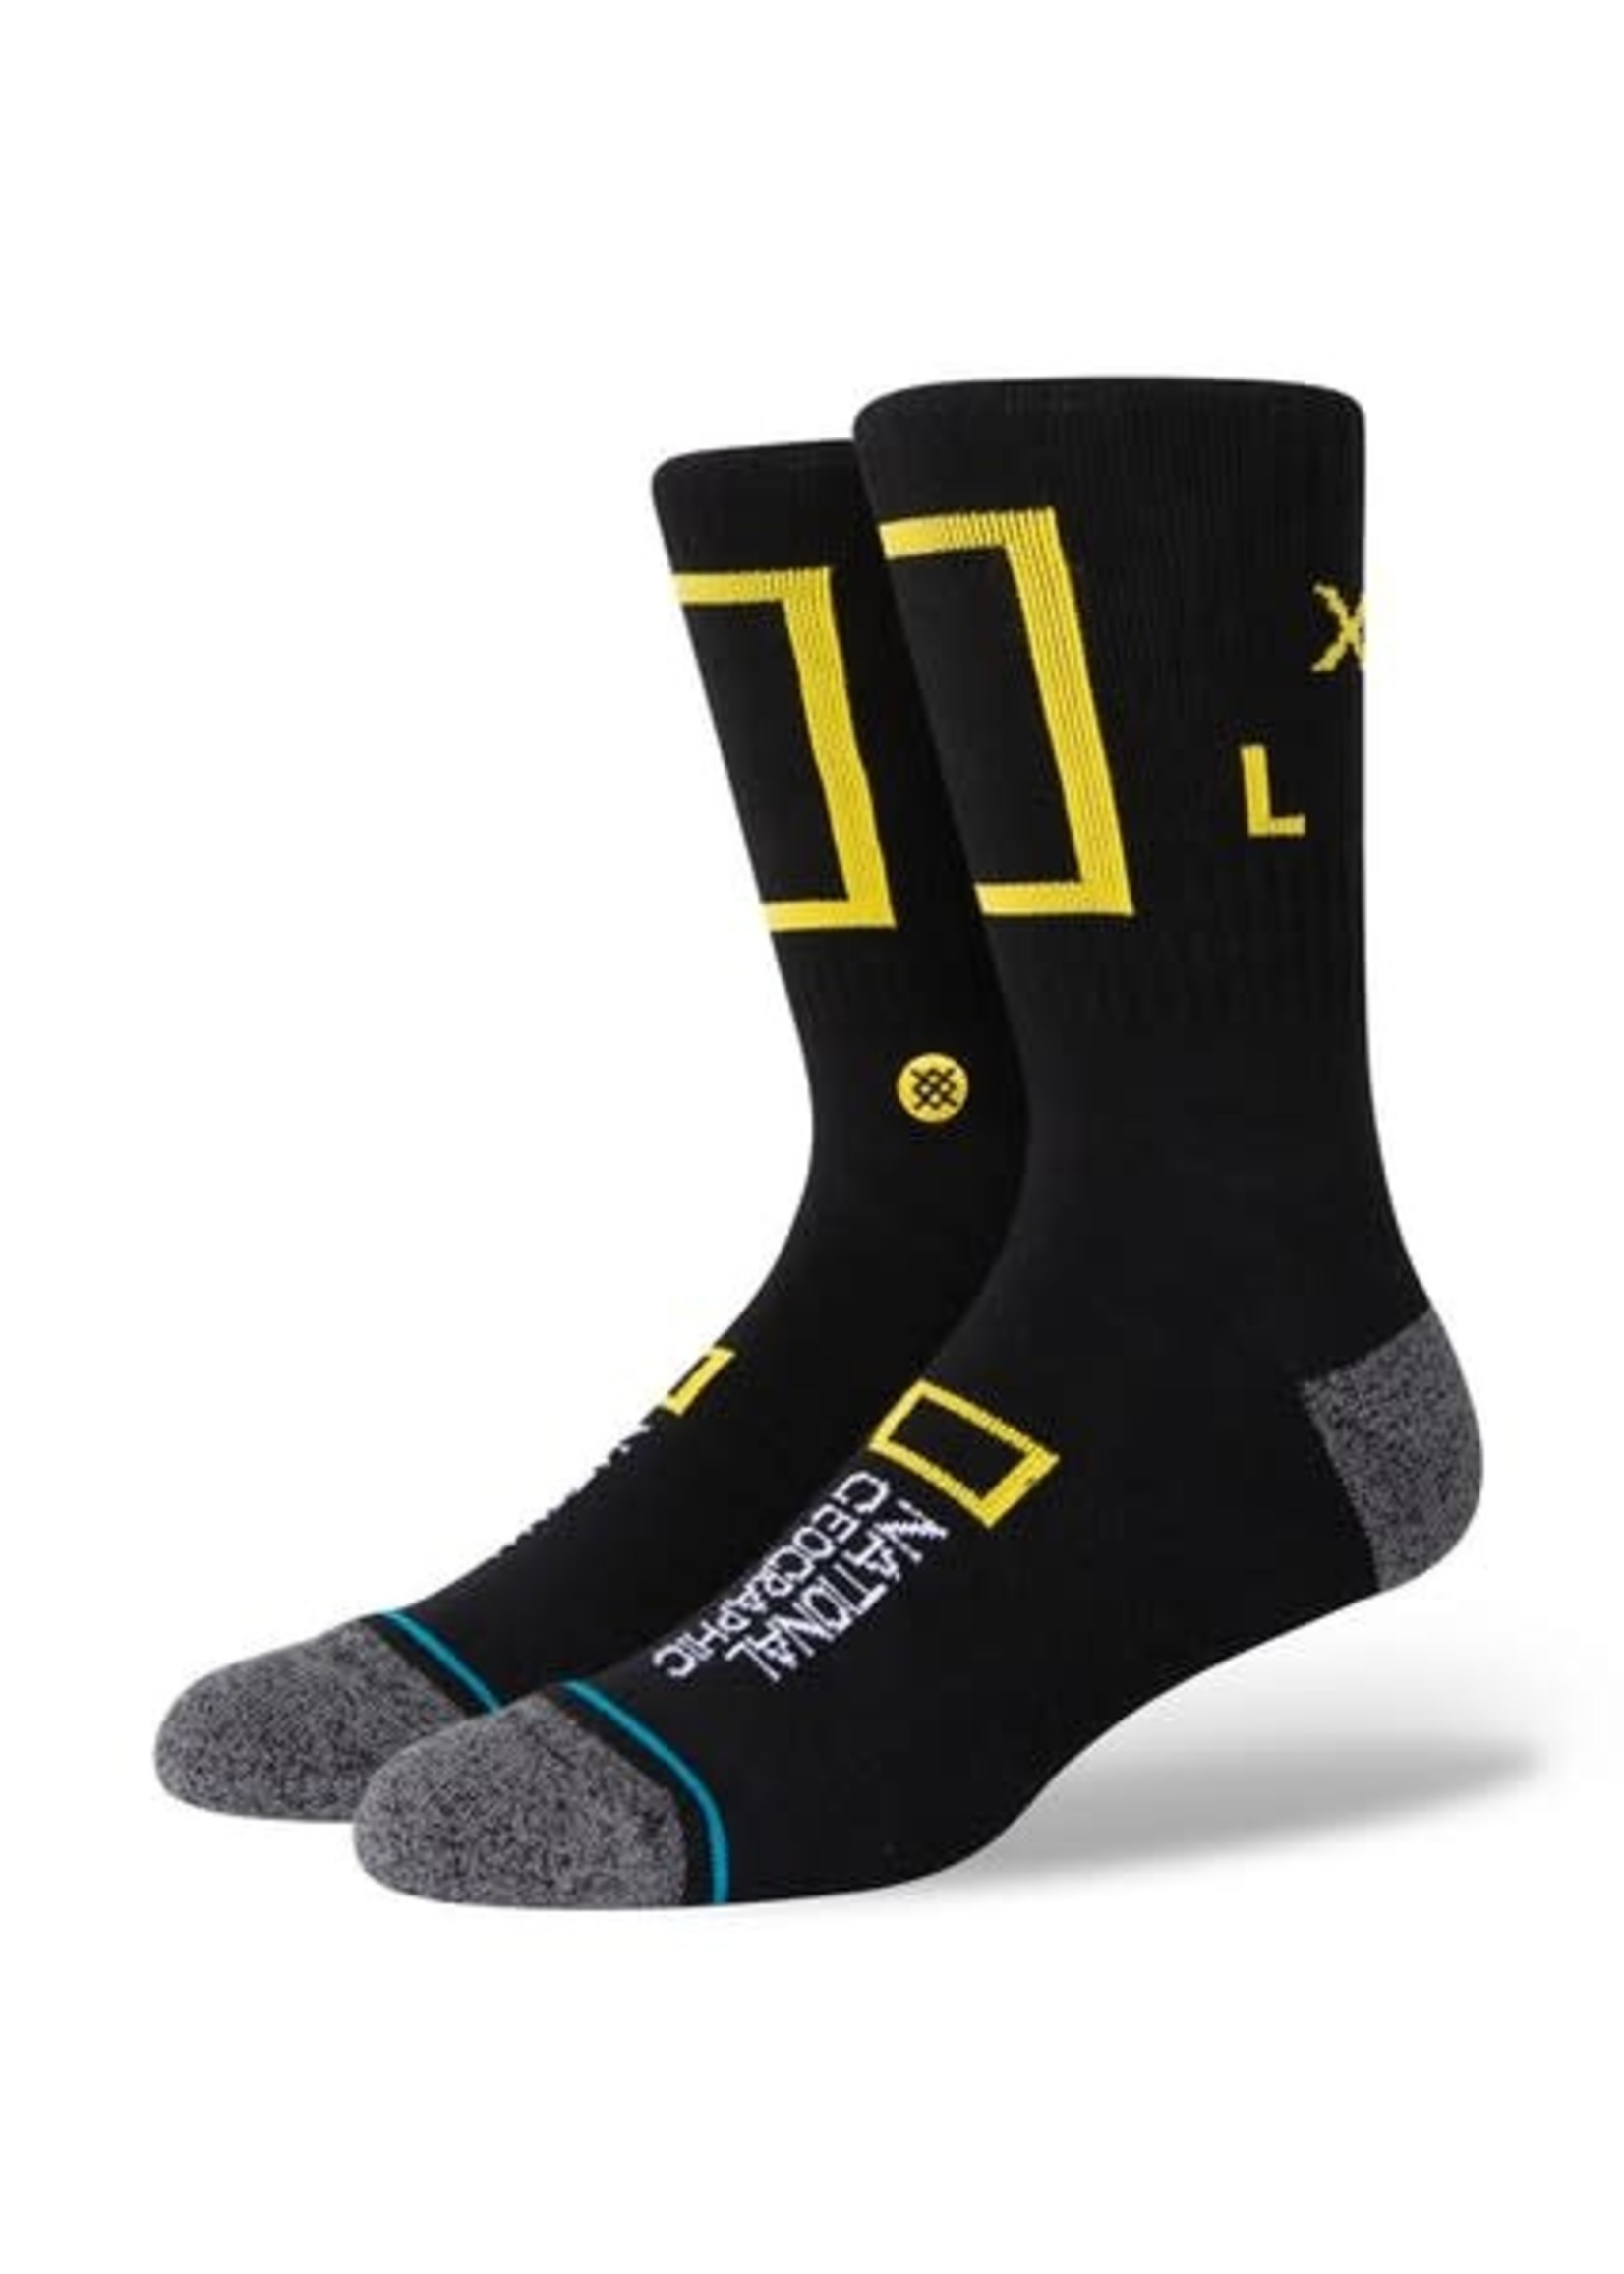 Stance Stance National Geographic Explore Arrow Socks